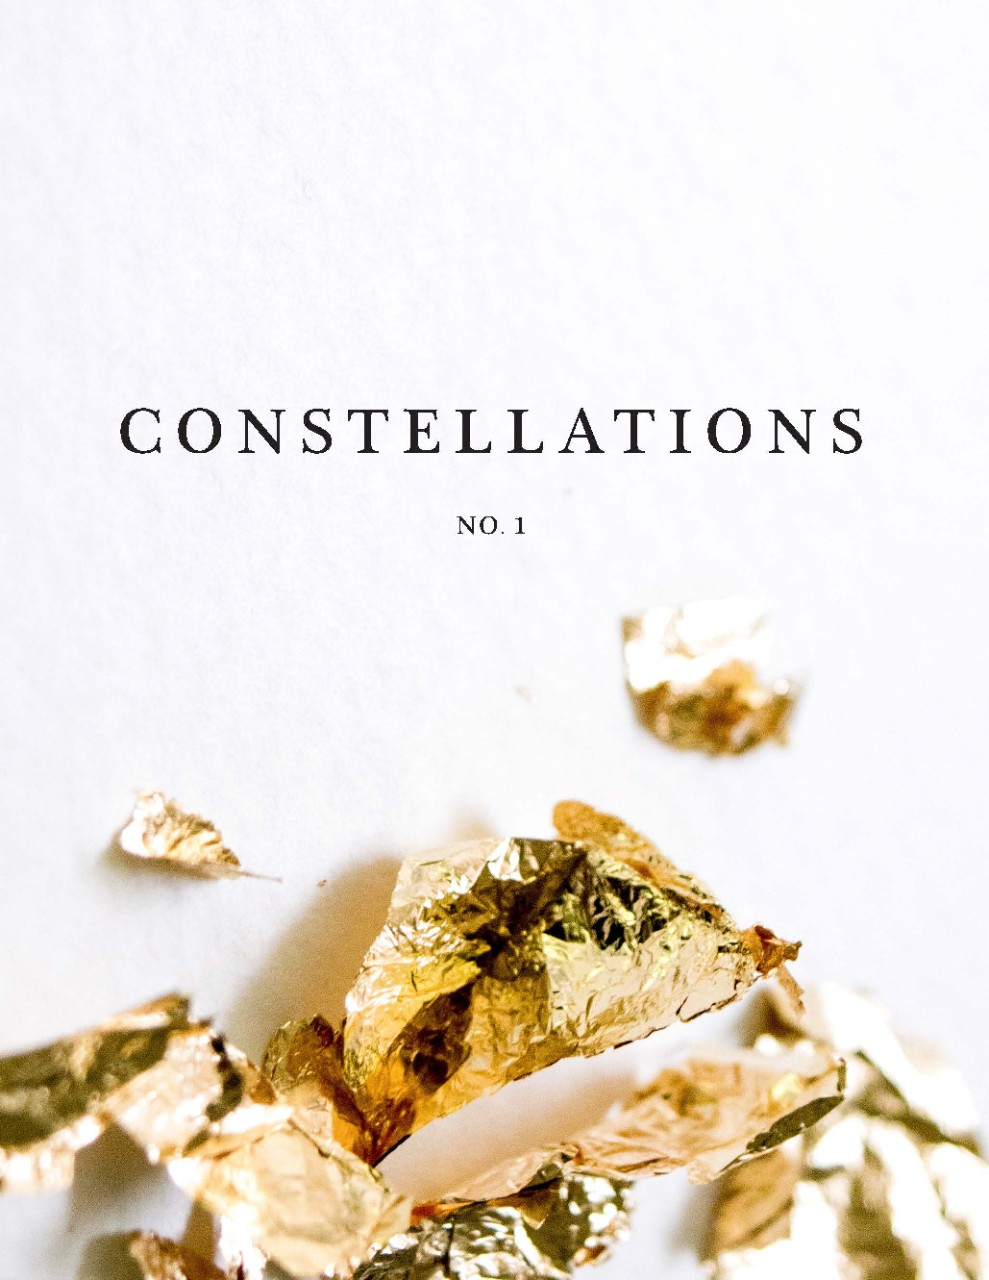 Constellations artwork by Abbey Geverdt